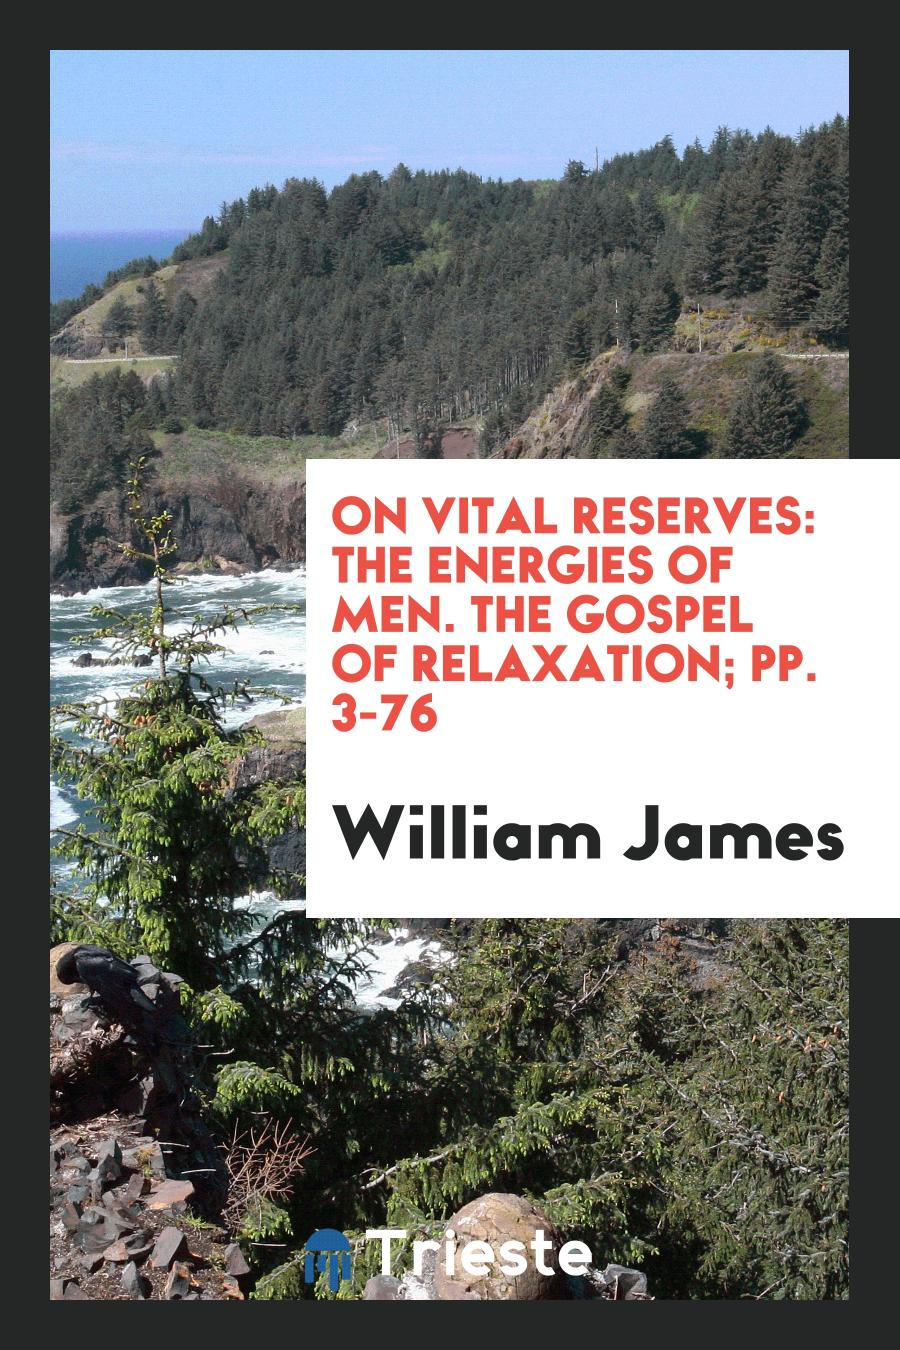 On Vital Reserves: The Energies of Men. The Gospel of Relaxation; pp. 3-76